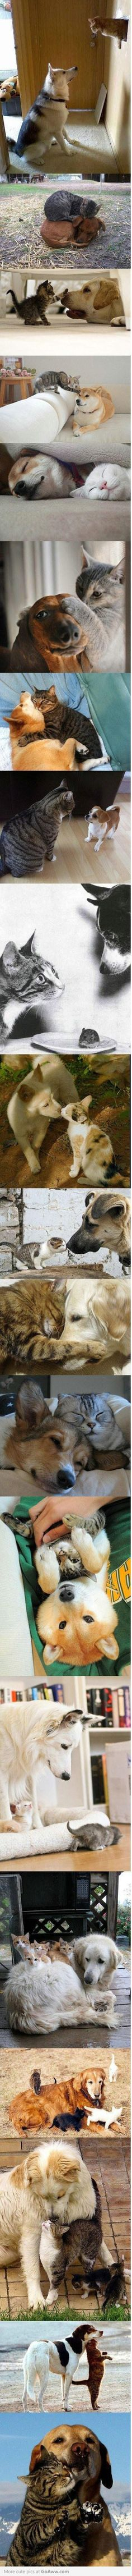 dogs and cats. living together